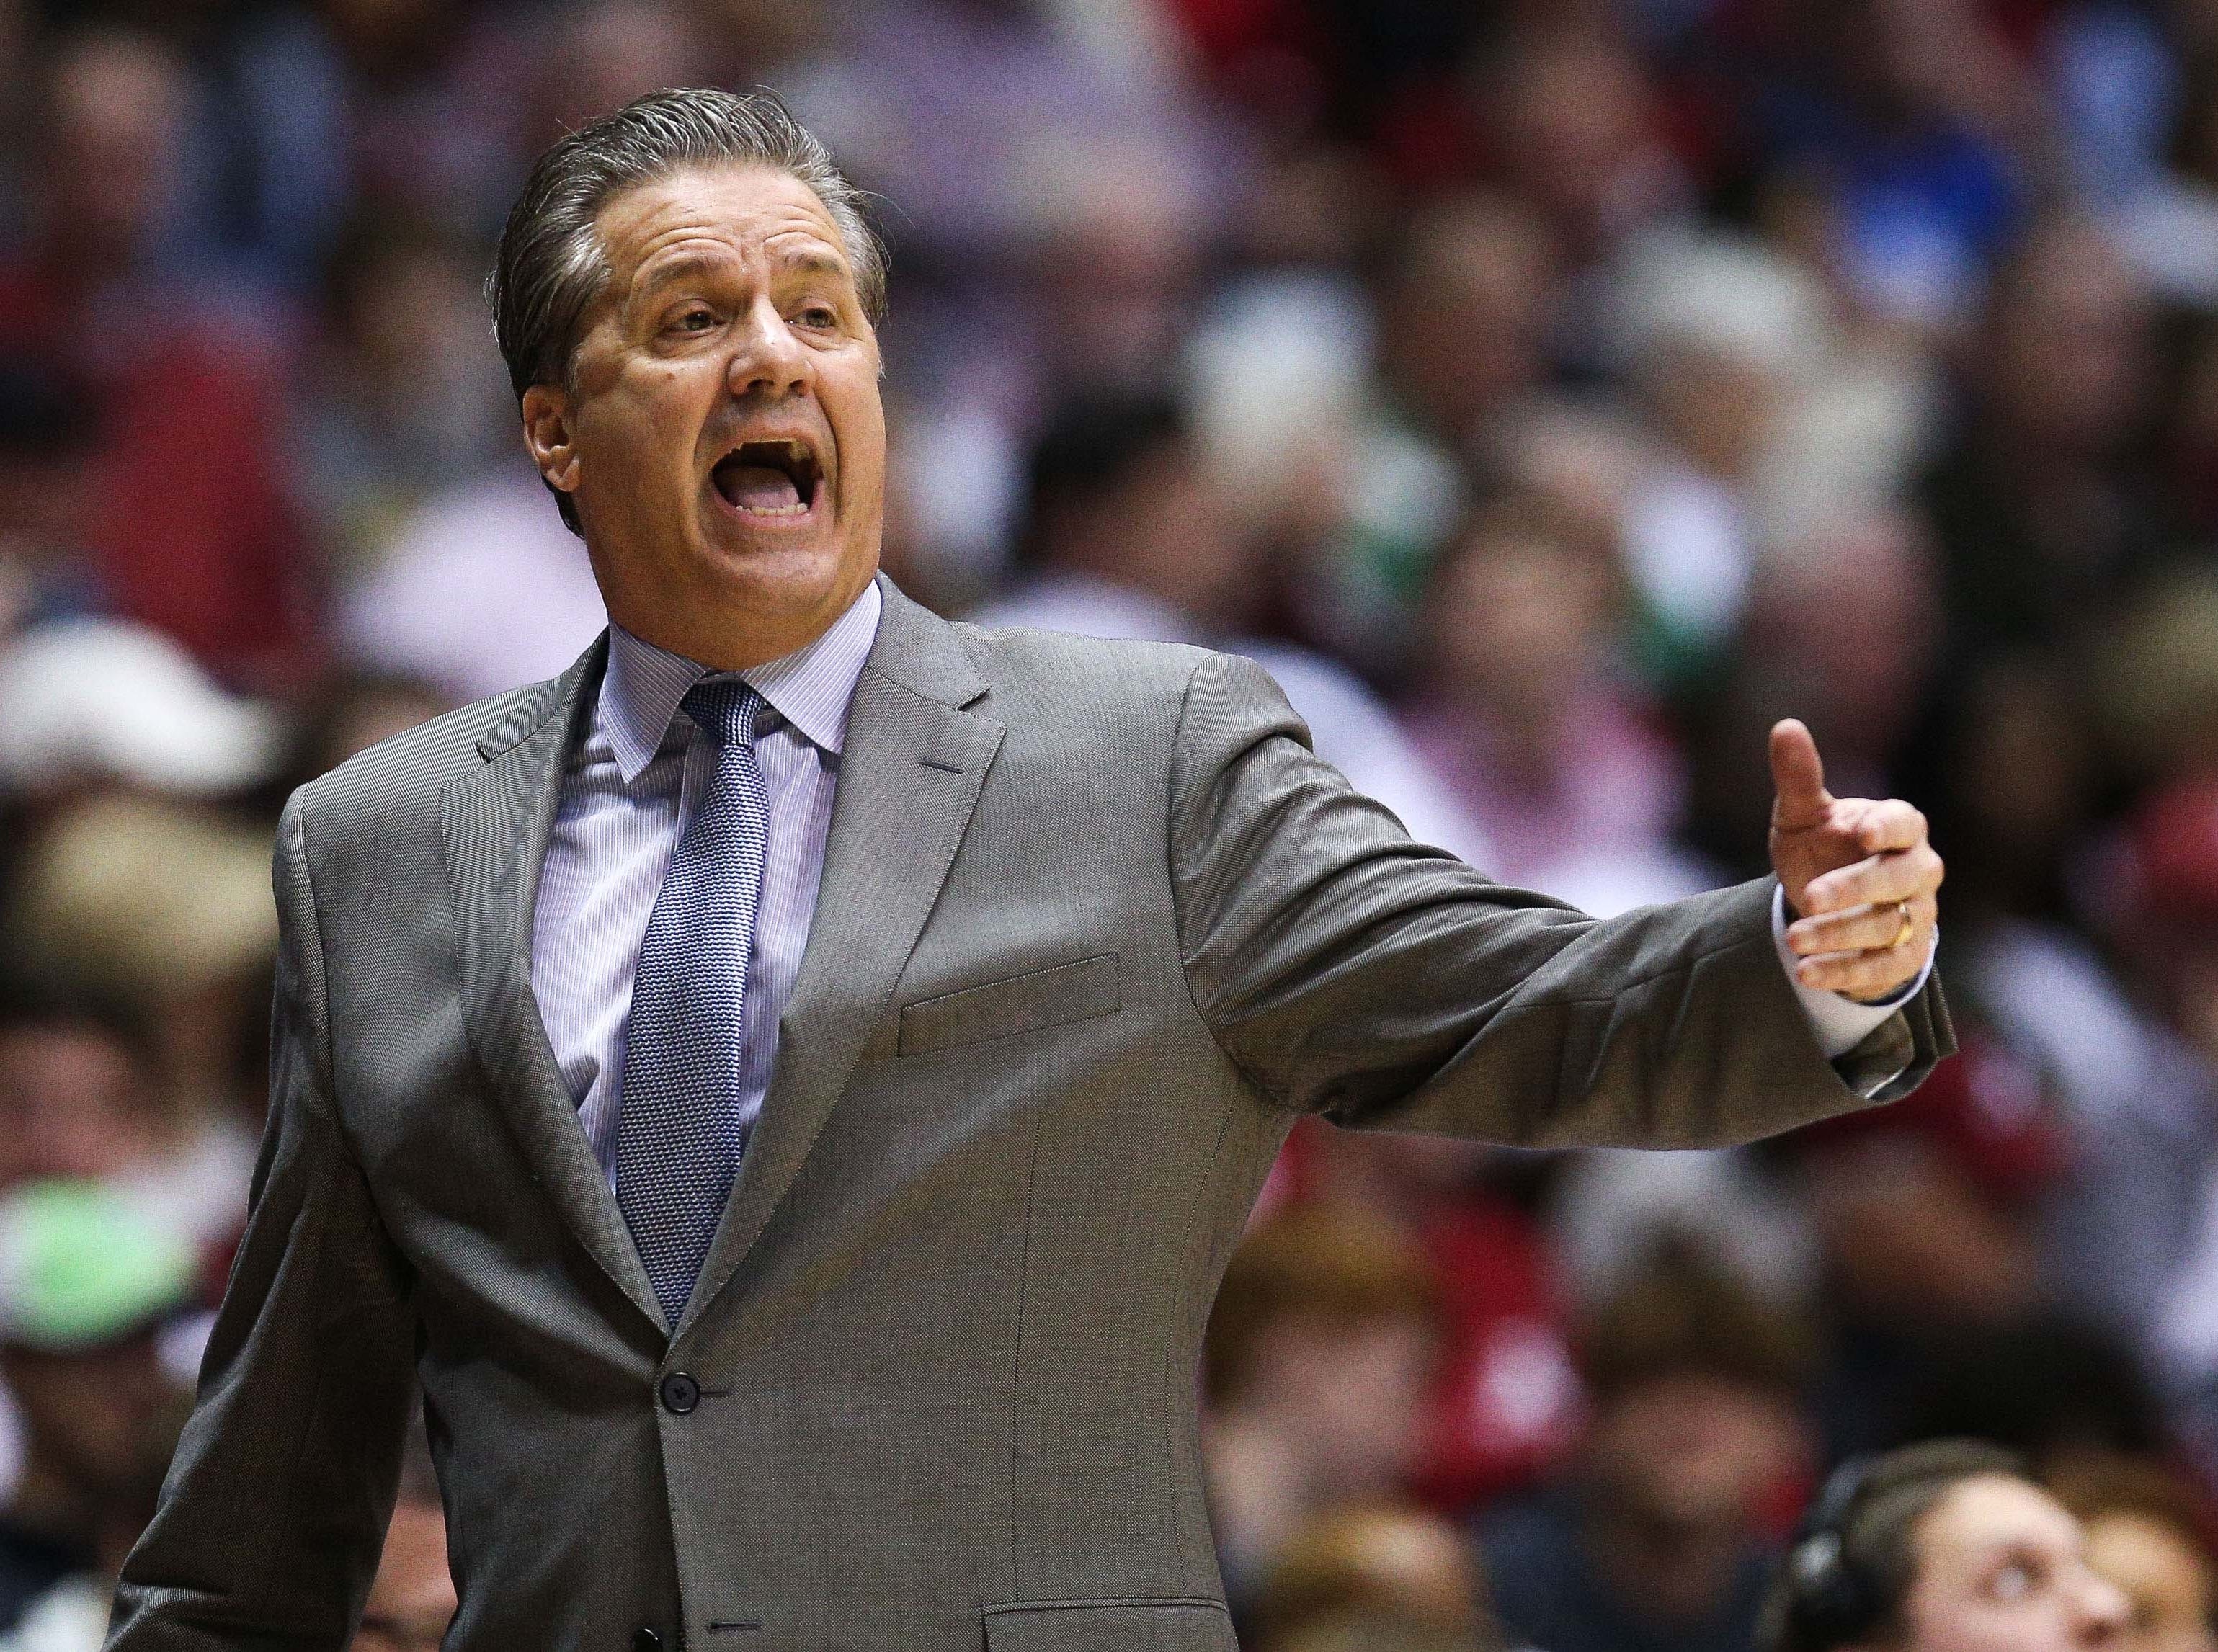 Jan 5, 2019; Tuscaloosa, AL, USA; Kentucky Wildcats head coach John Calipari during the second half against Alabama Crimson Tide at Coleman Coliseum. Mandatory Credit: Marvin Gentry-USA TODAY Sports